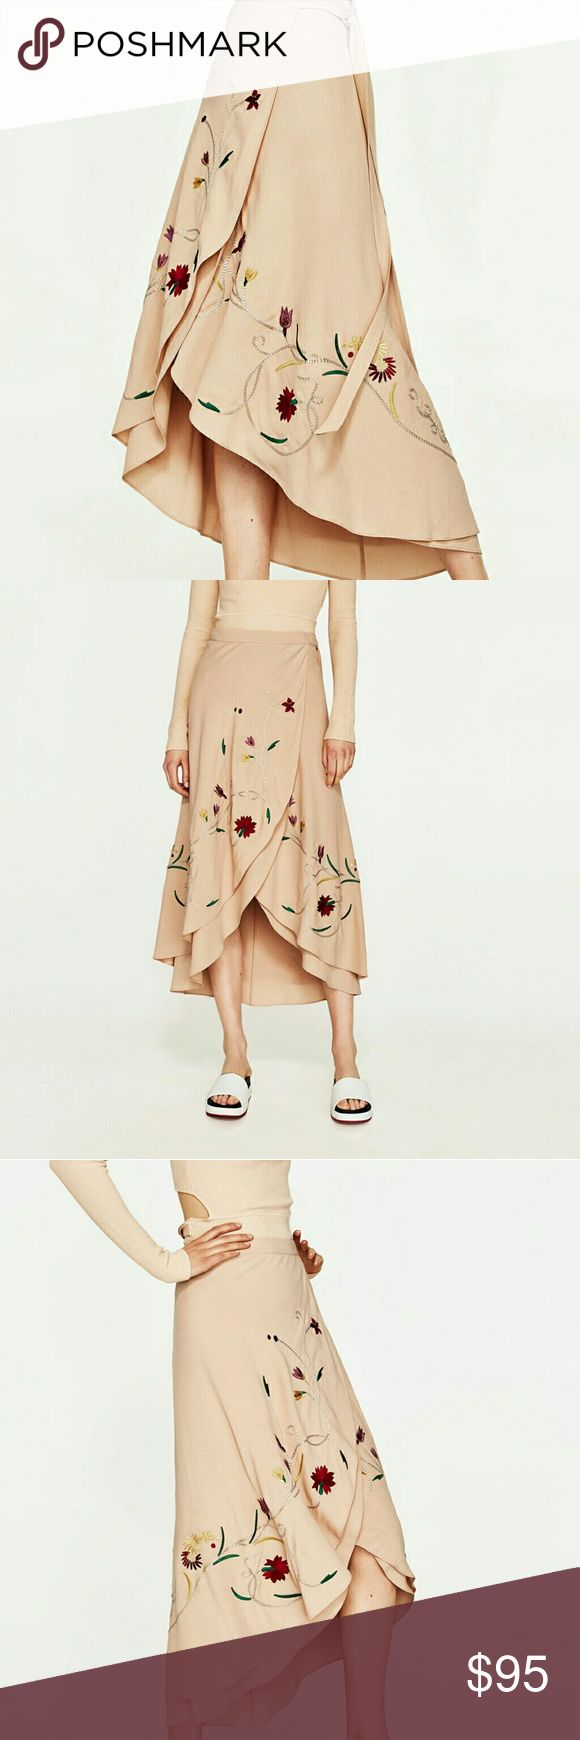 Zara floral embroidered sarong skirt Flowing sarong skirt with asymmetric hemline. Embroidered floral detailing along the bottom. Adjustable strap. Brand new with tag. No trades. Zara Skirts